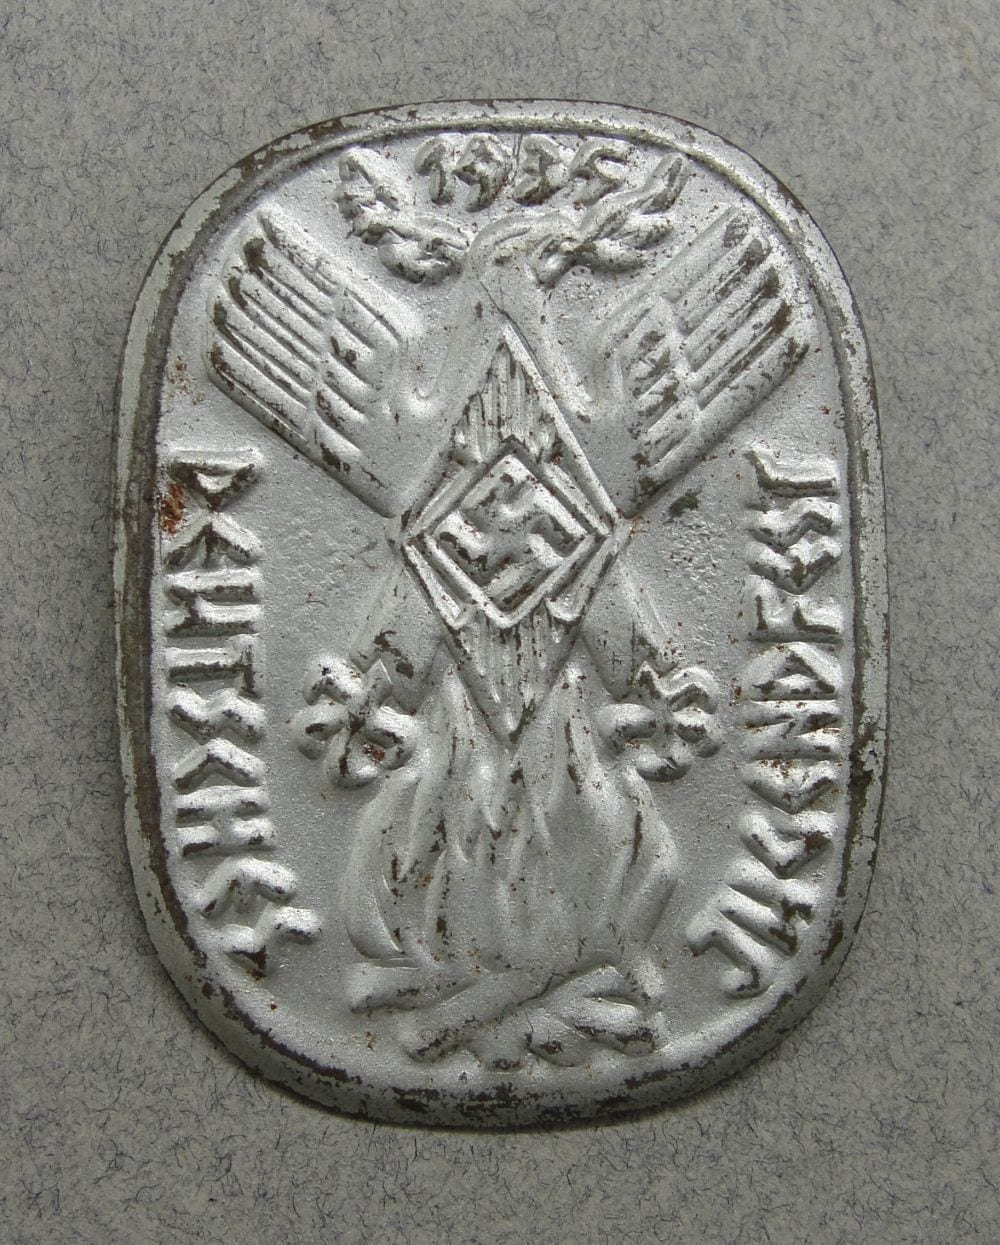 1935 Hitler Youth Day Badge